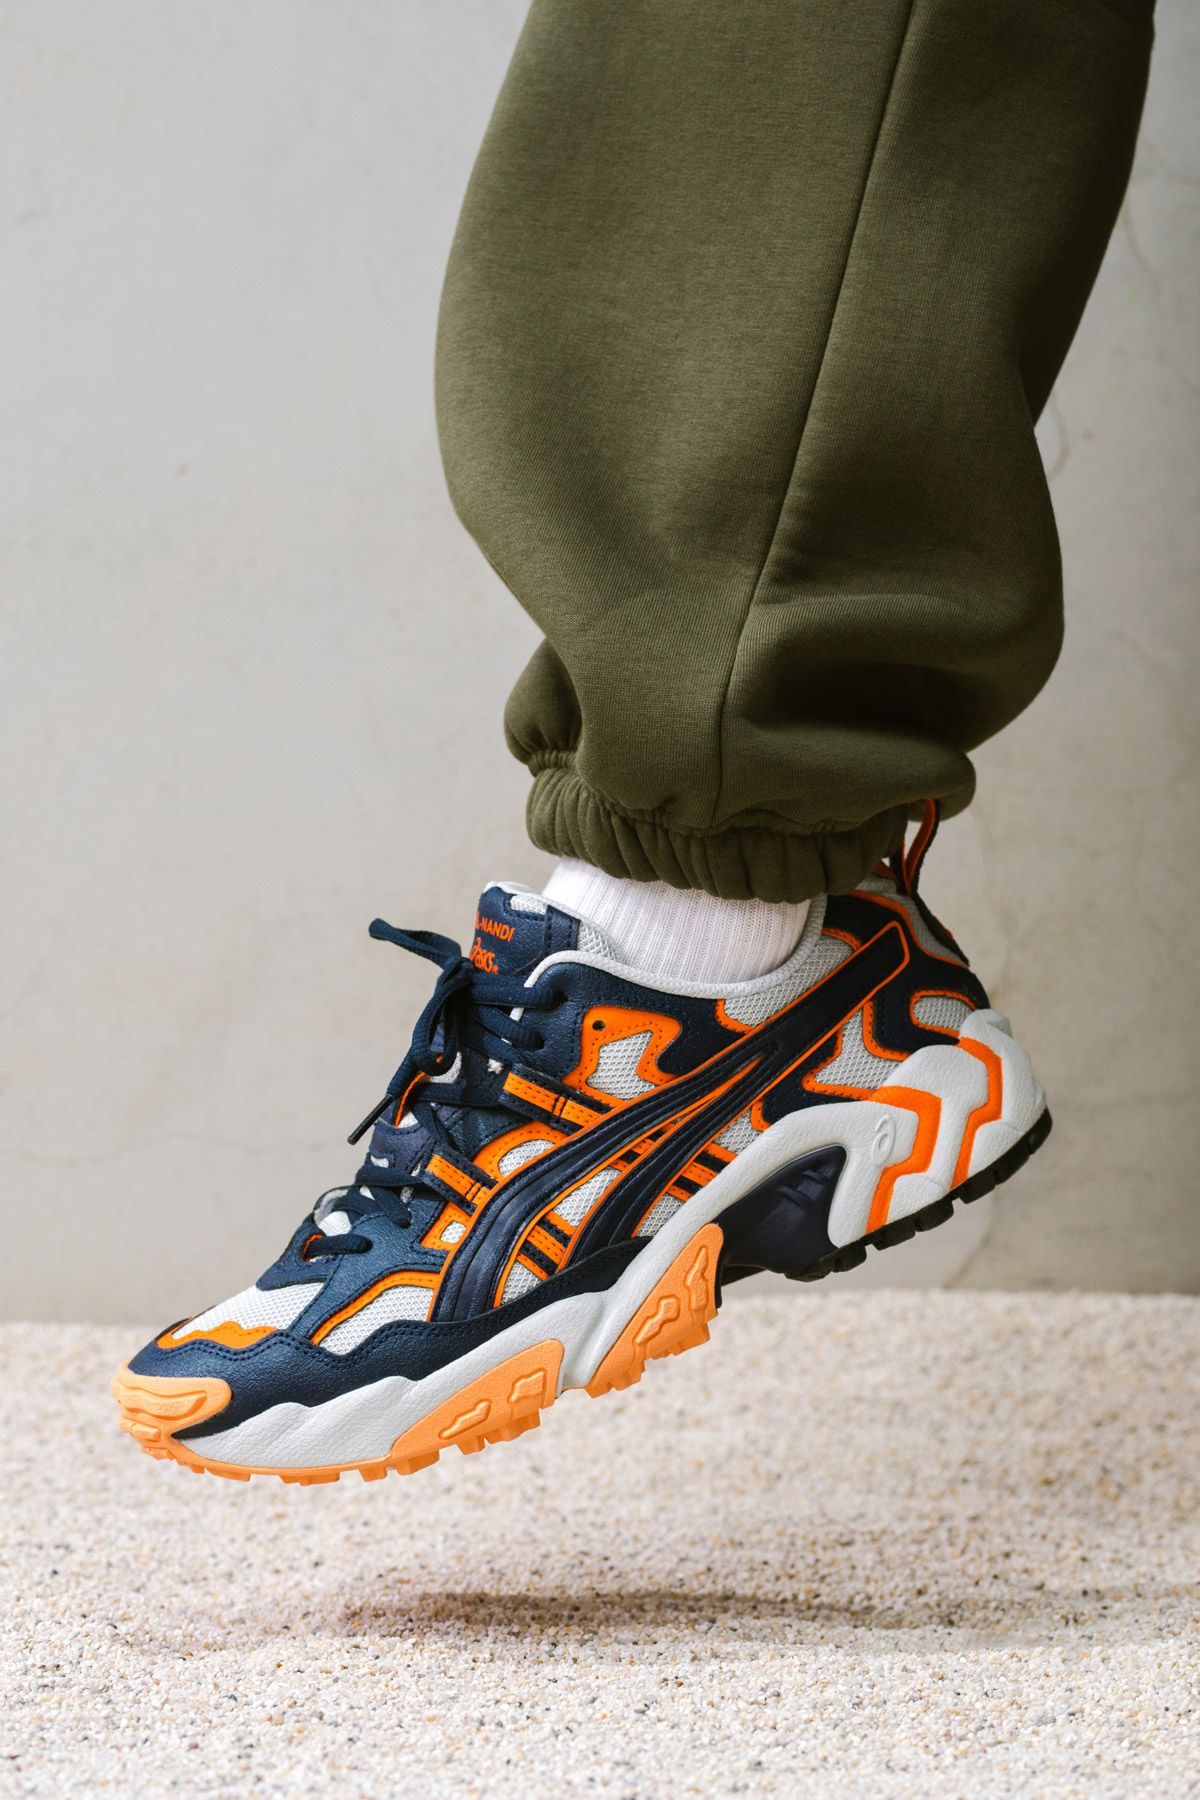 ASICS Relauches the GEL-NANDI For the First Time Since 2000 4